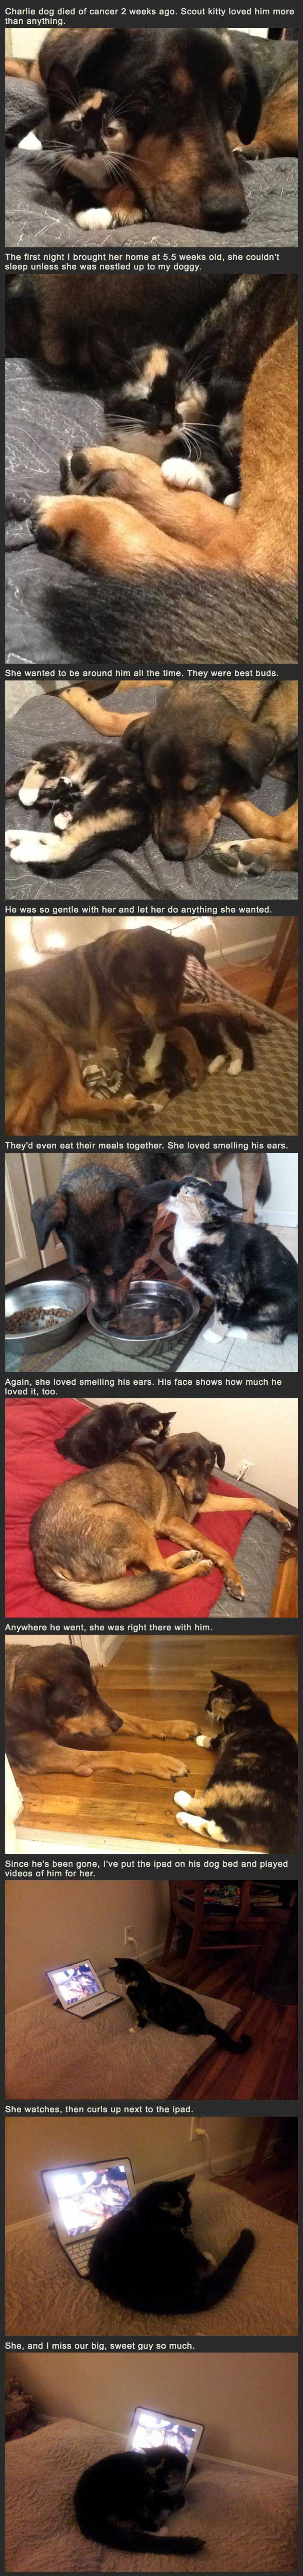 My dog died of cancer 2 weeks ago; my cat misses him. This story is heartbreaking, but it's true love at it's highest. Wow sad an beautiful what a great story animals are truly amazing...